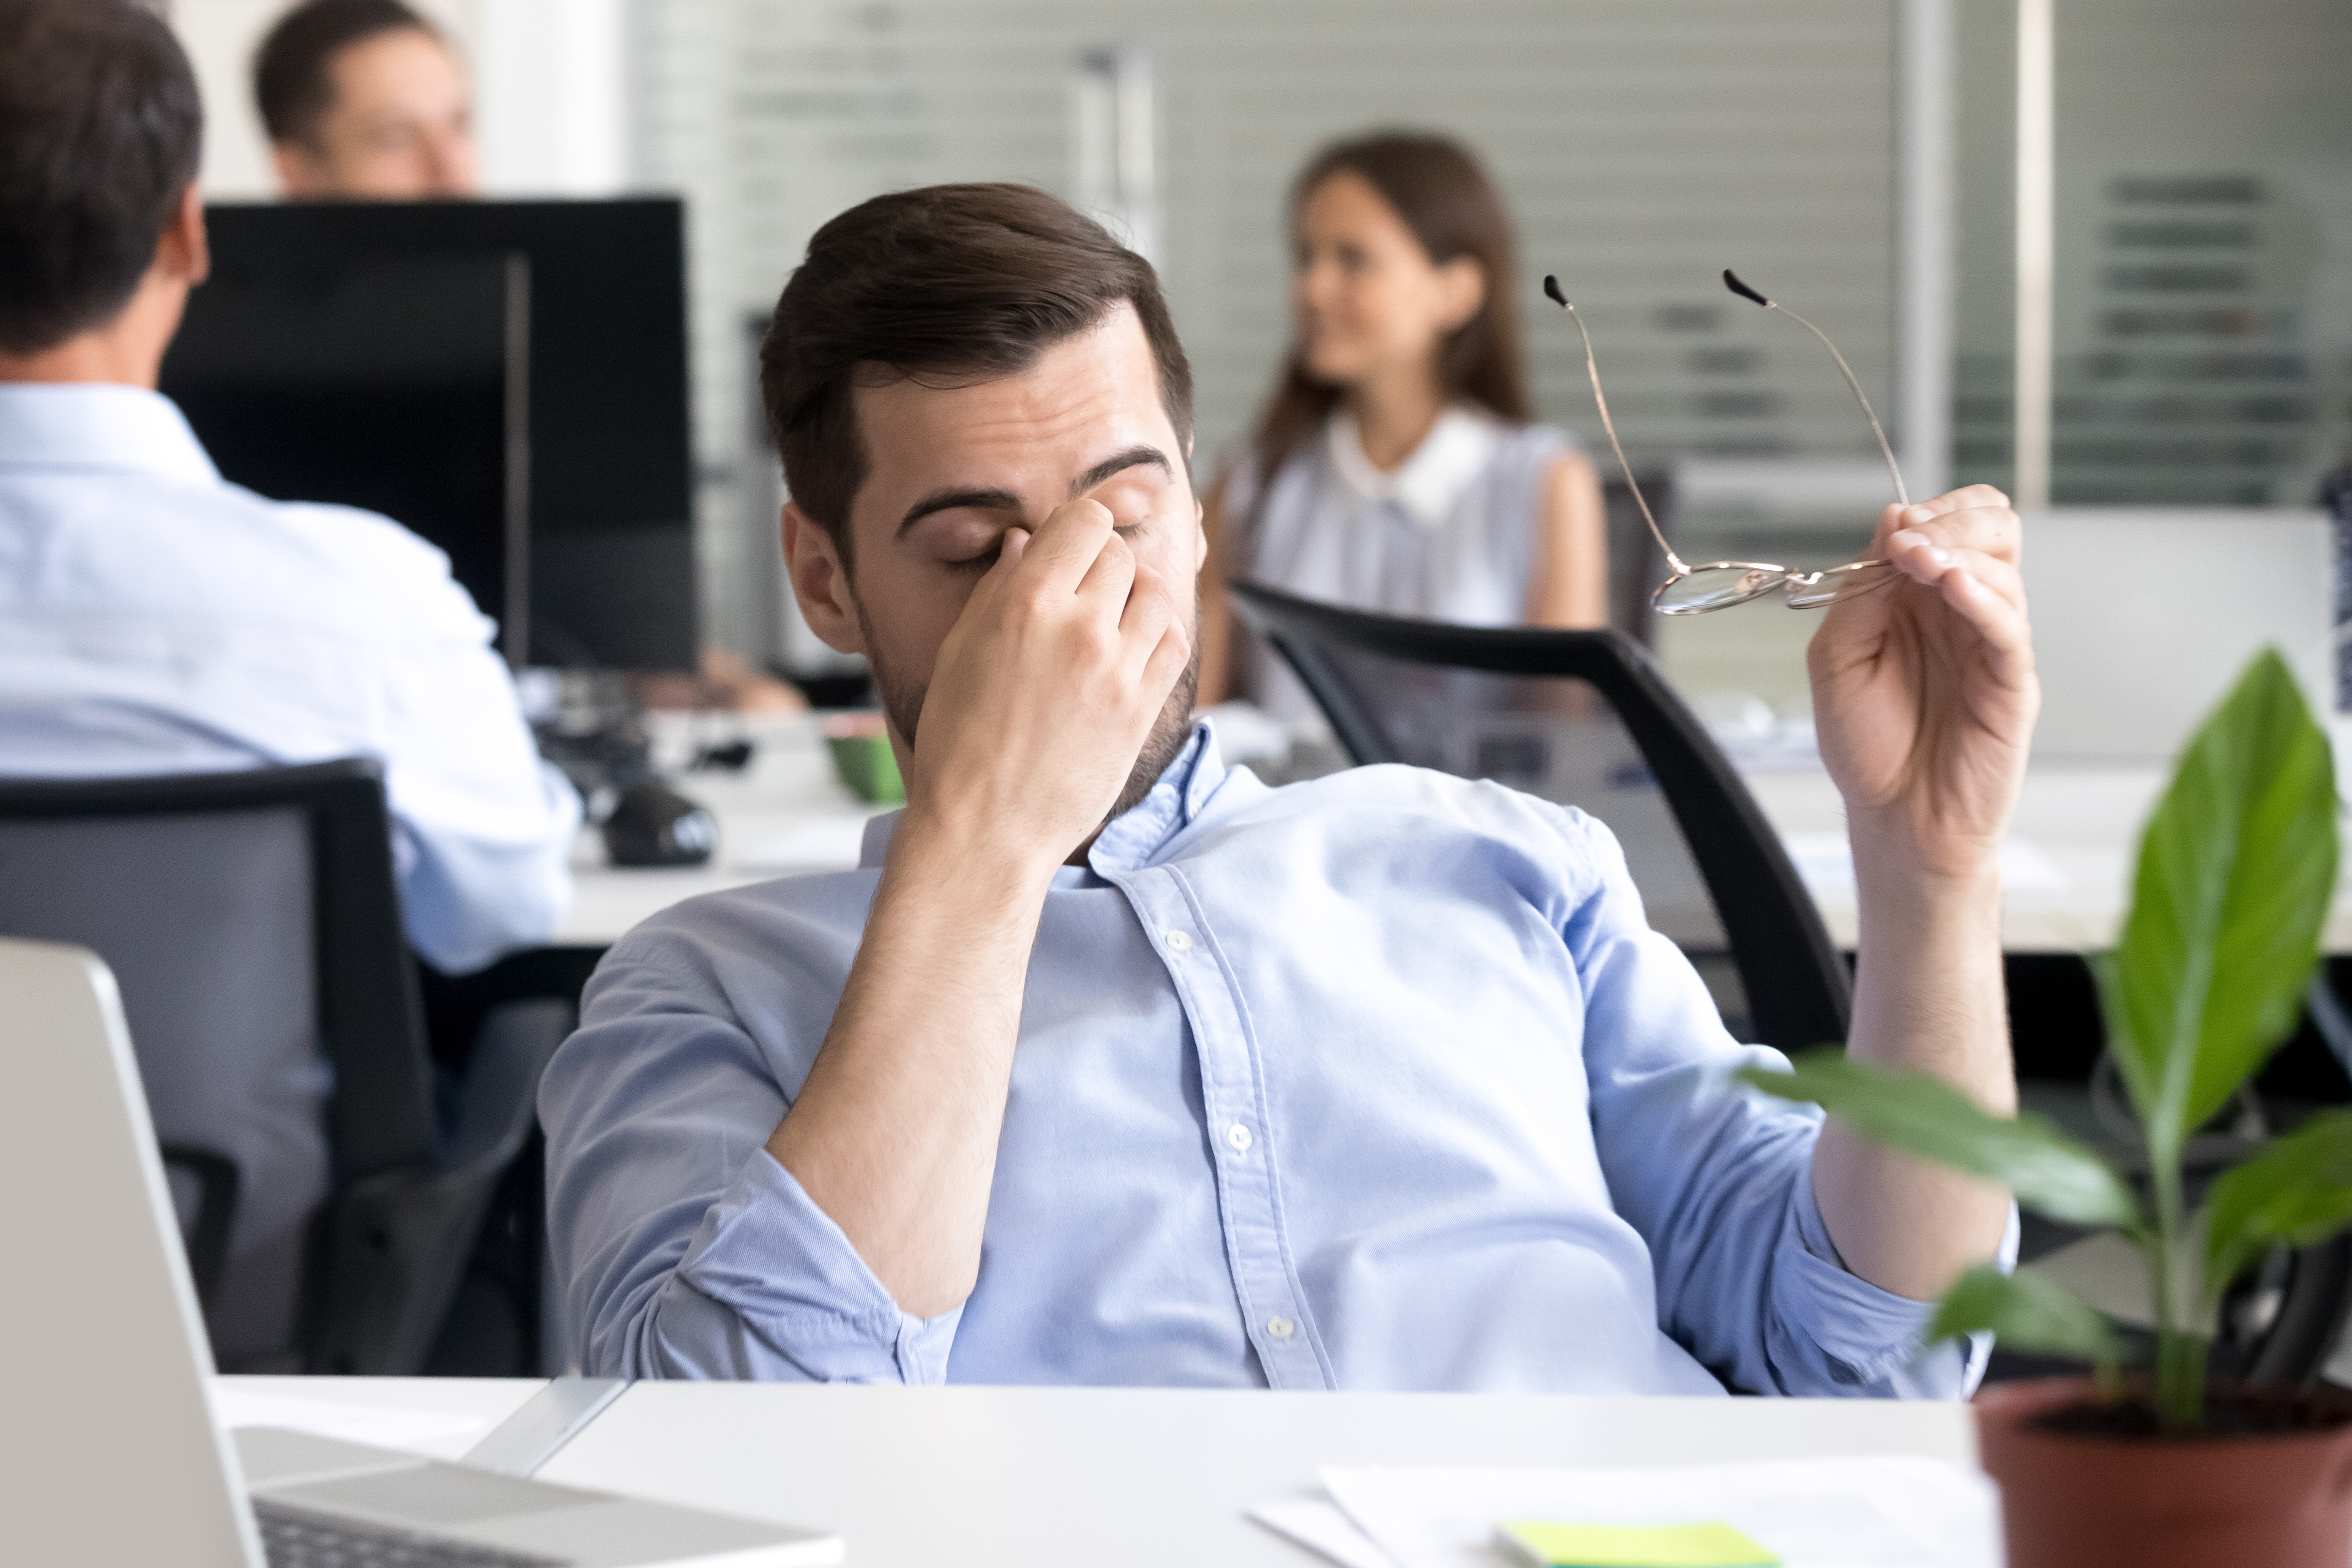 How to Deal With Co-Workers Acting Like a Boss | Career Trend